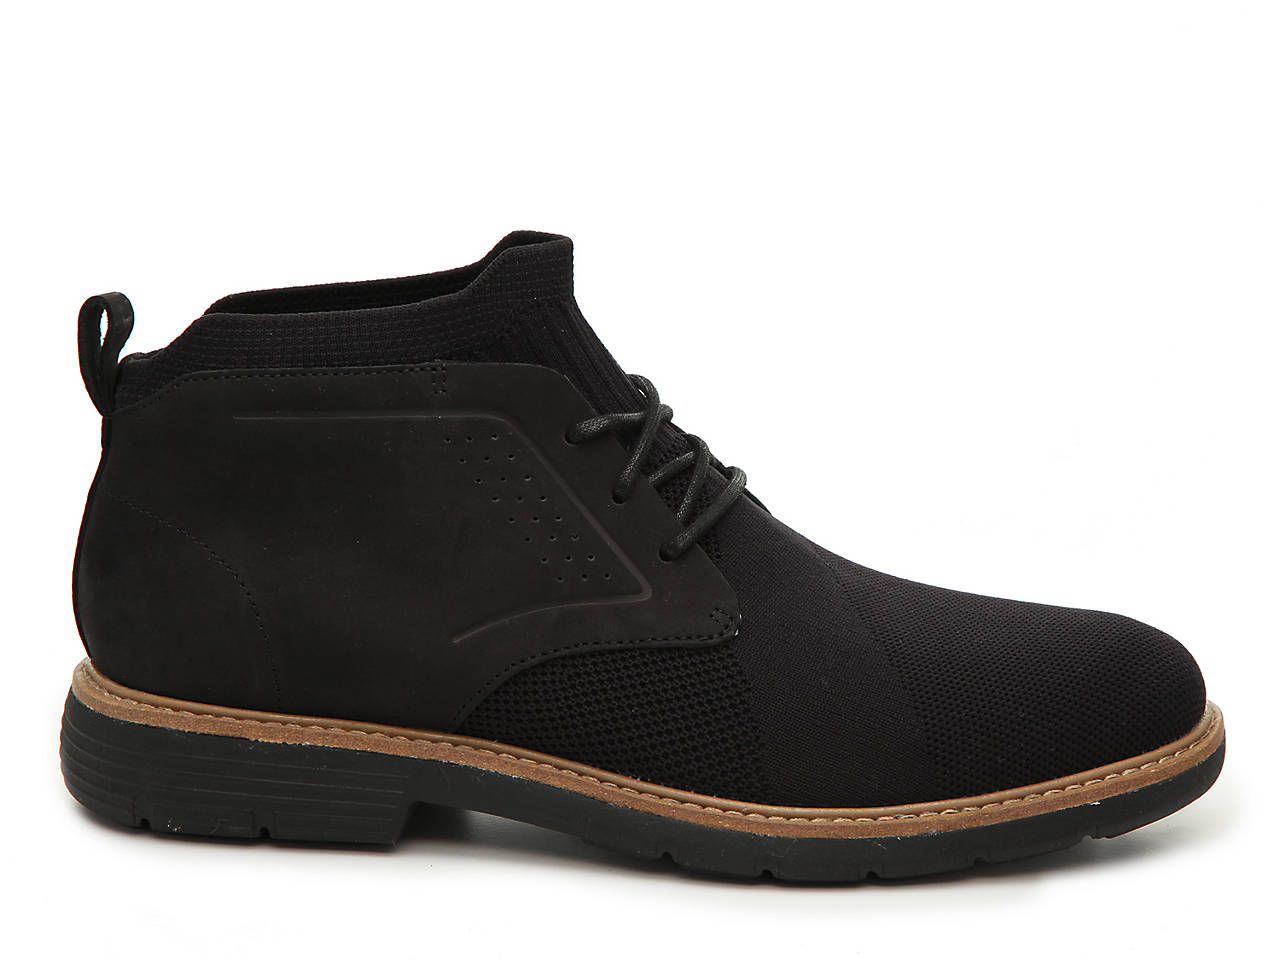 199c9f16a9787 Mark Nason Lite Lugg Webster Chukka Boot Men's Shoes | DSW